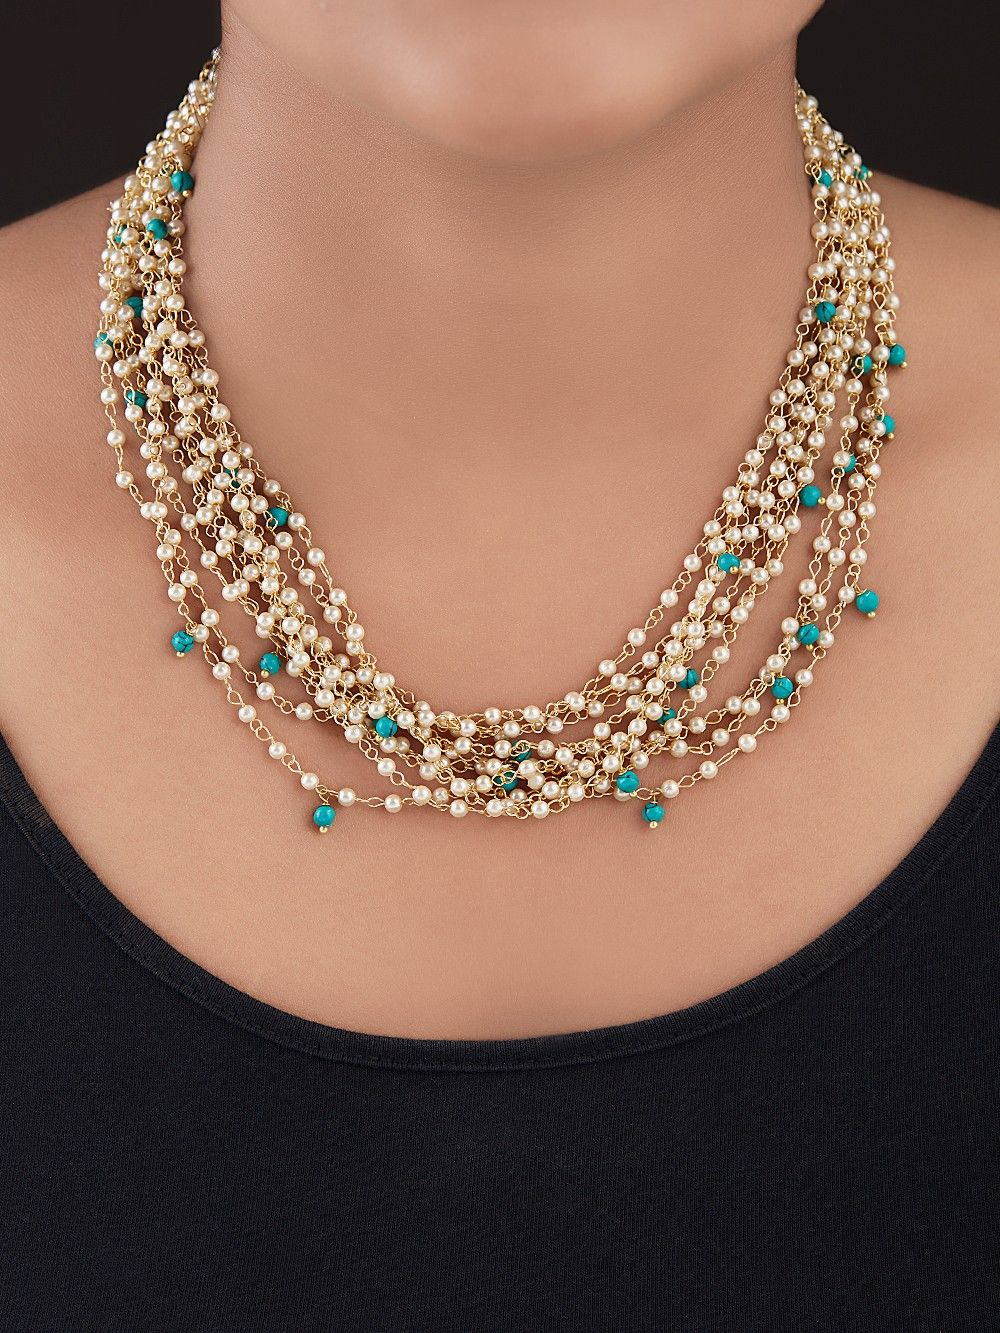 Buy Ivory Turquoise Gold Plated Silver Multistrand Necklace Online